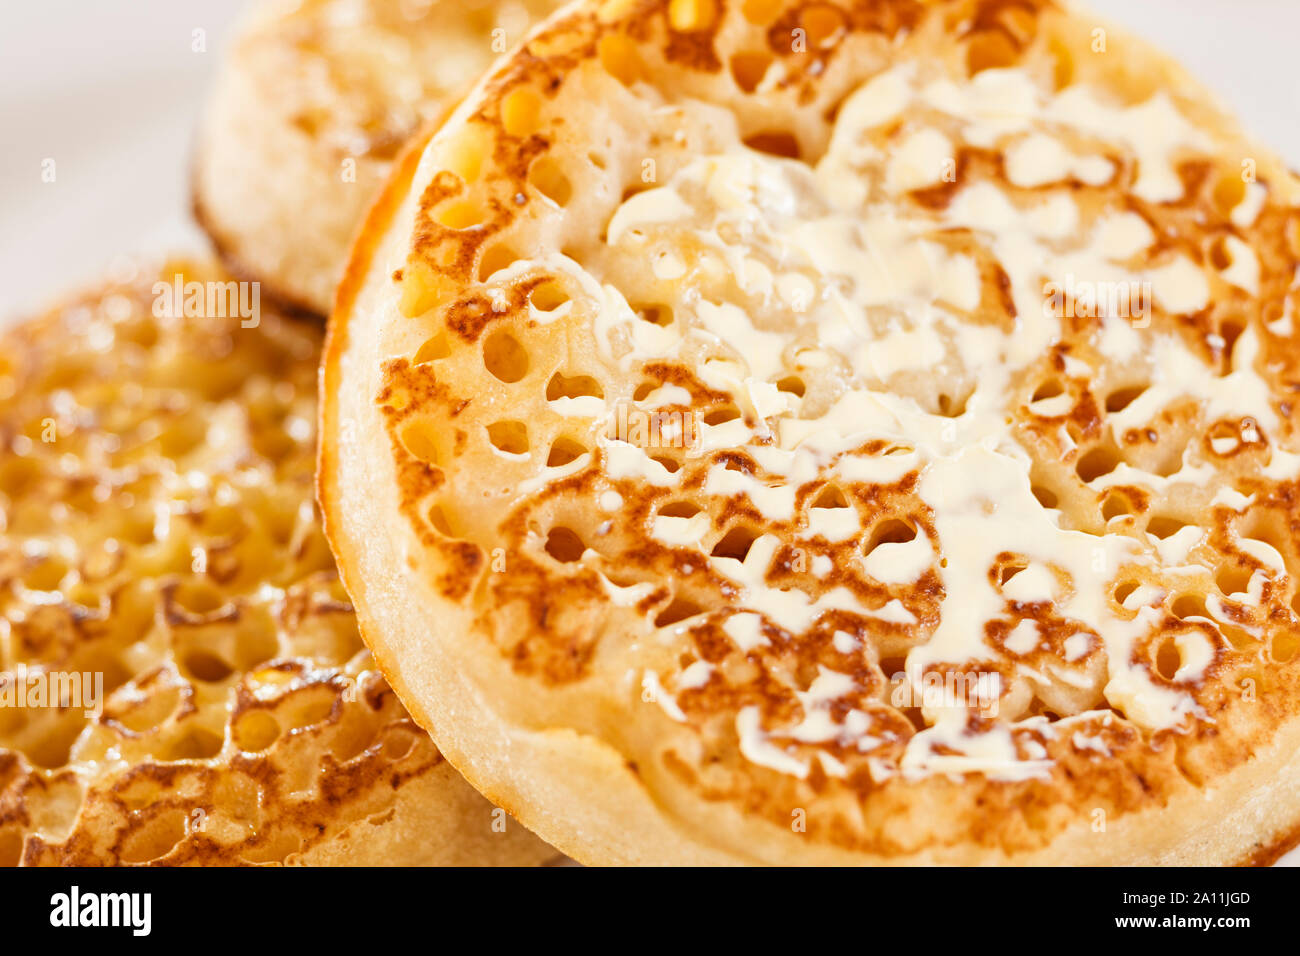 Buttered crumpets, close up Stock Photo